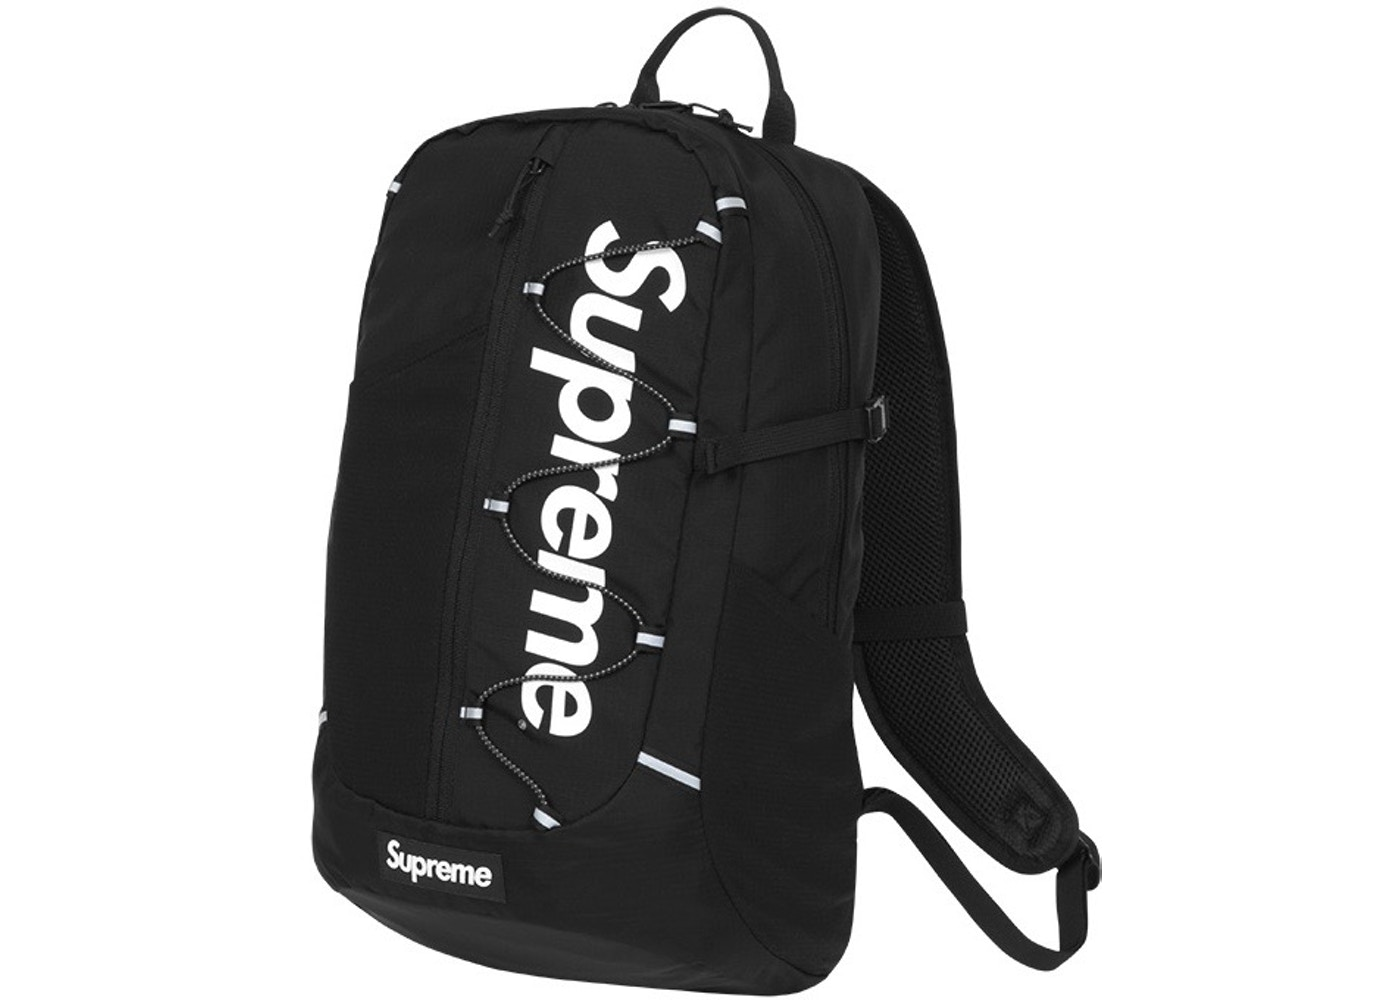 Supreme SS17 Backpack Black - SS17